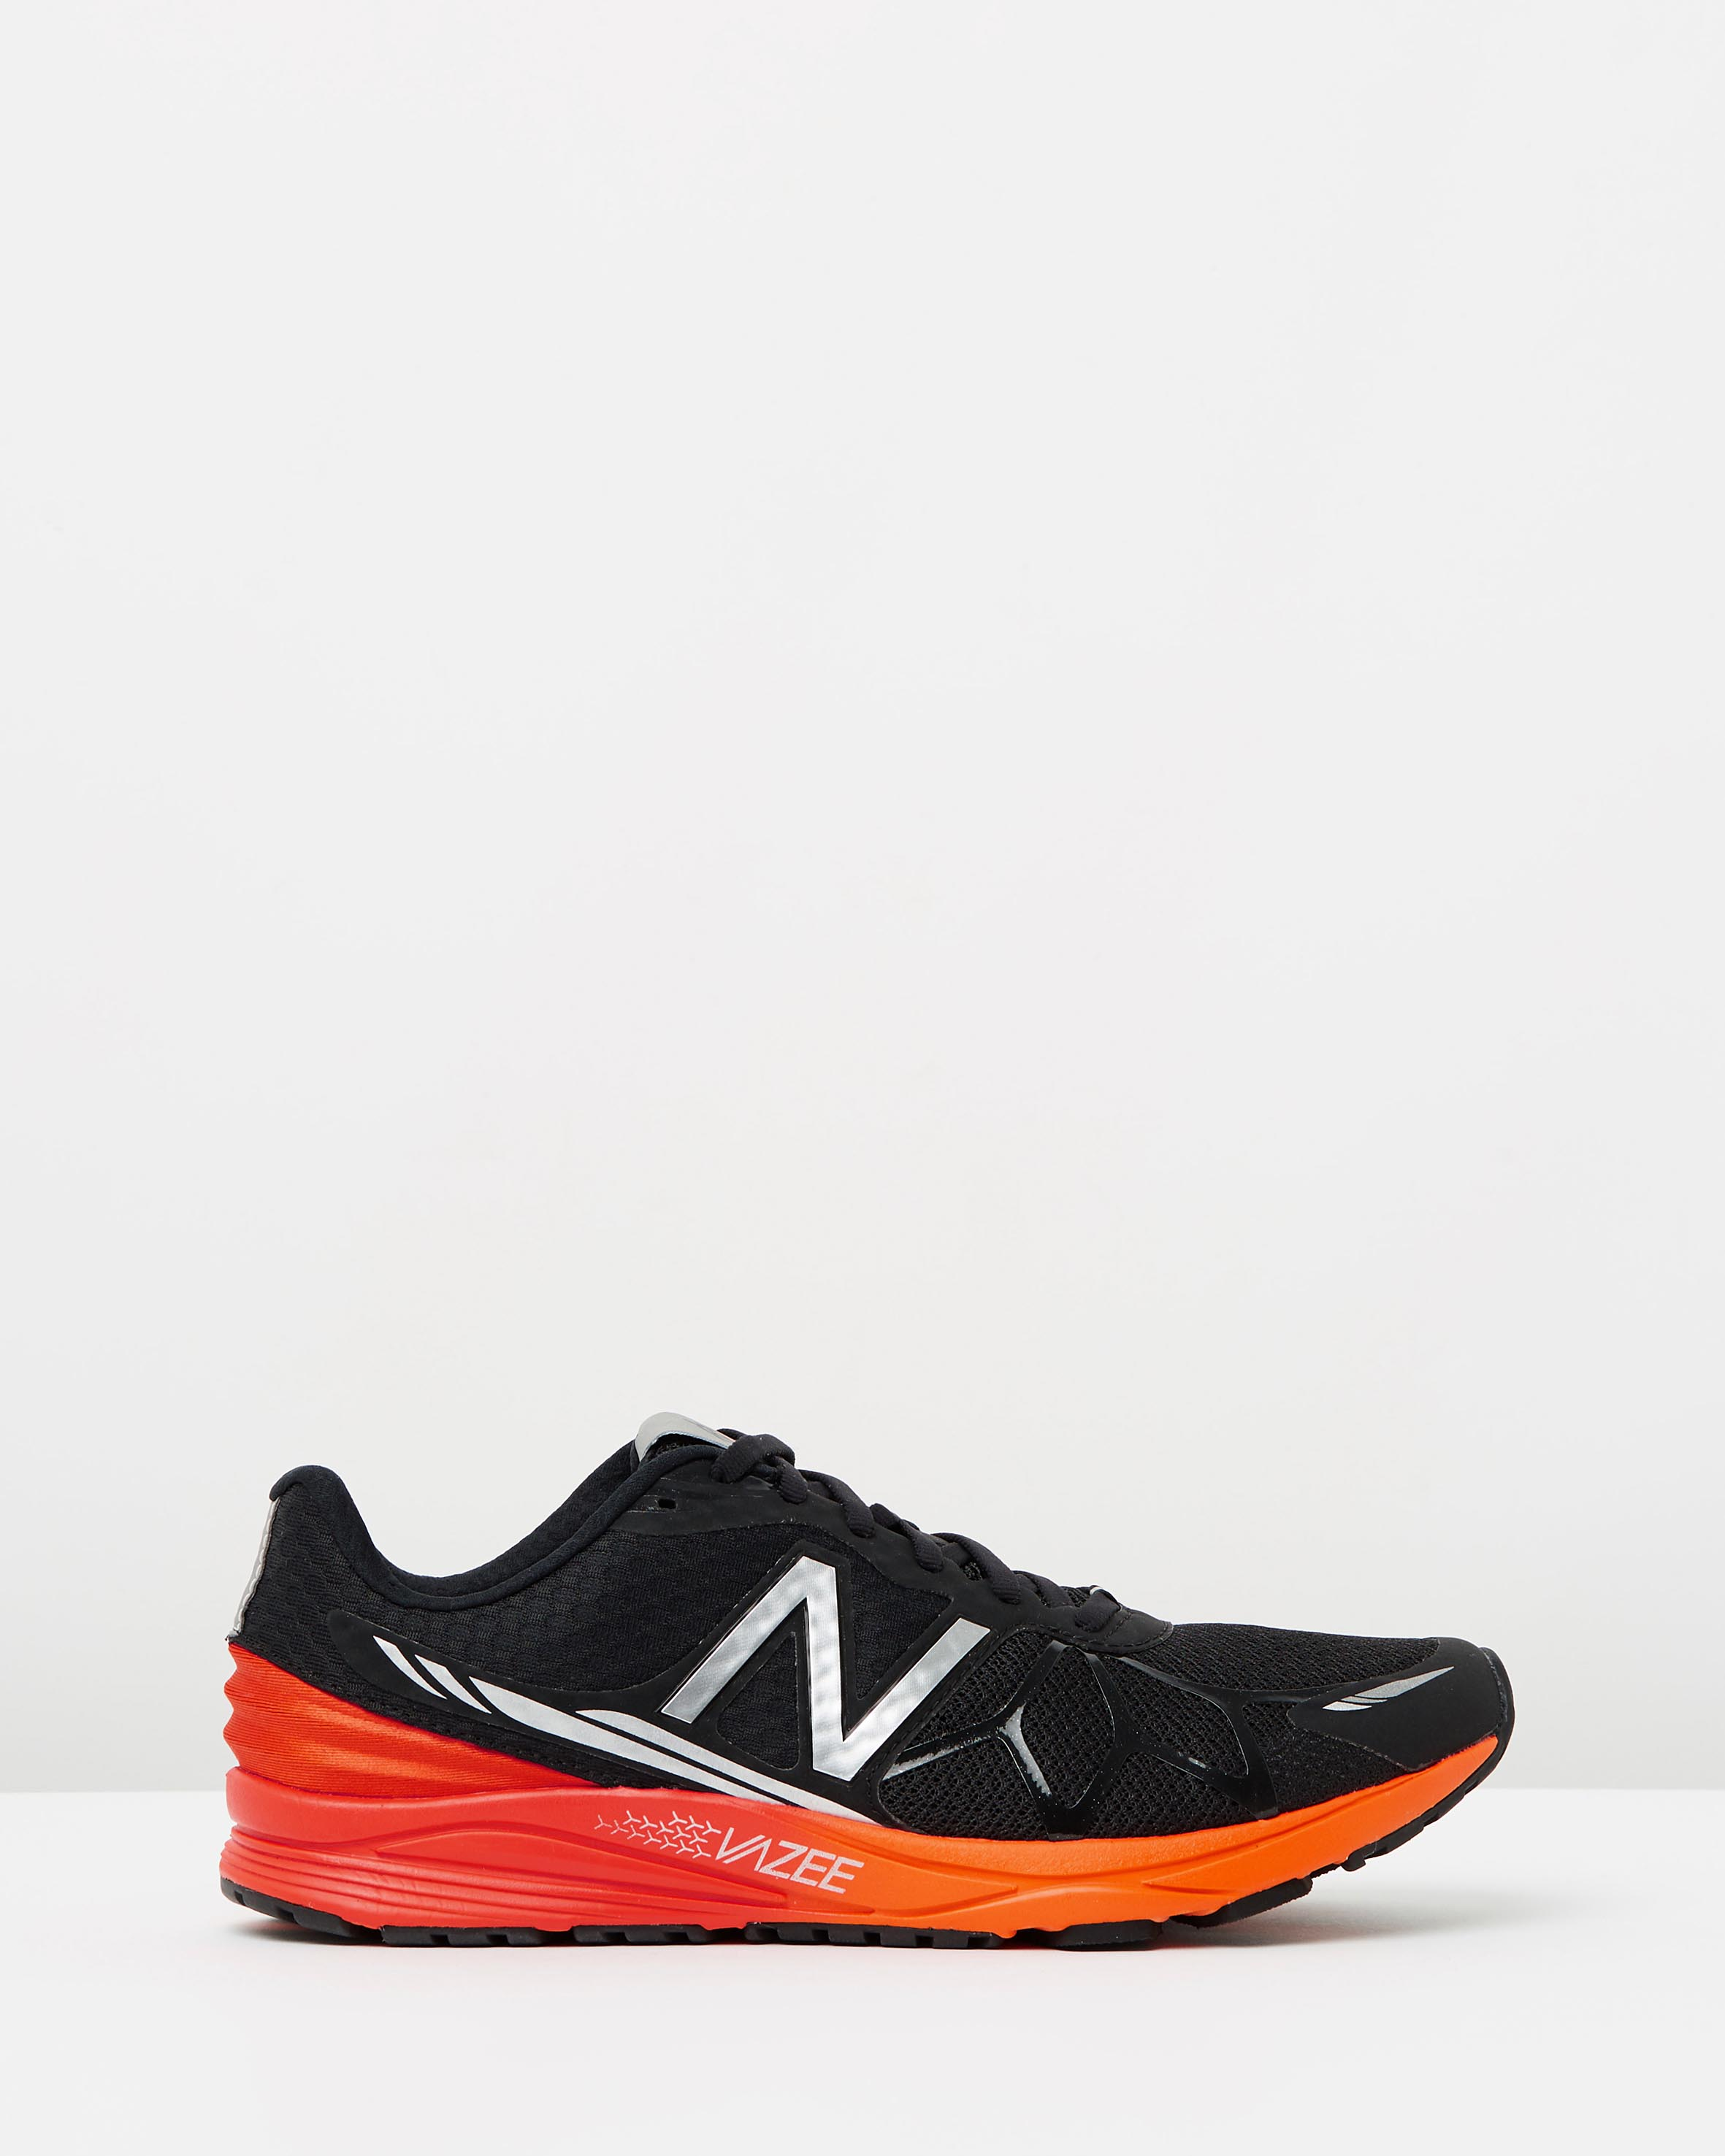 8rnxszee outlet new balance 996 gold kaufen